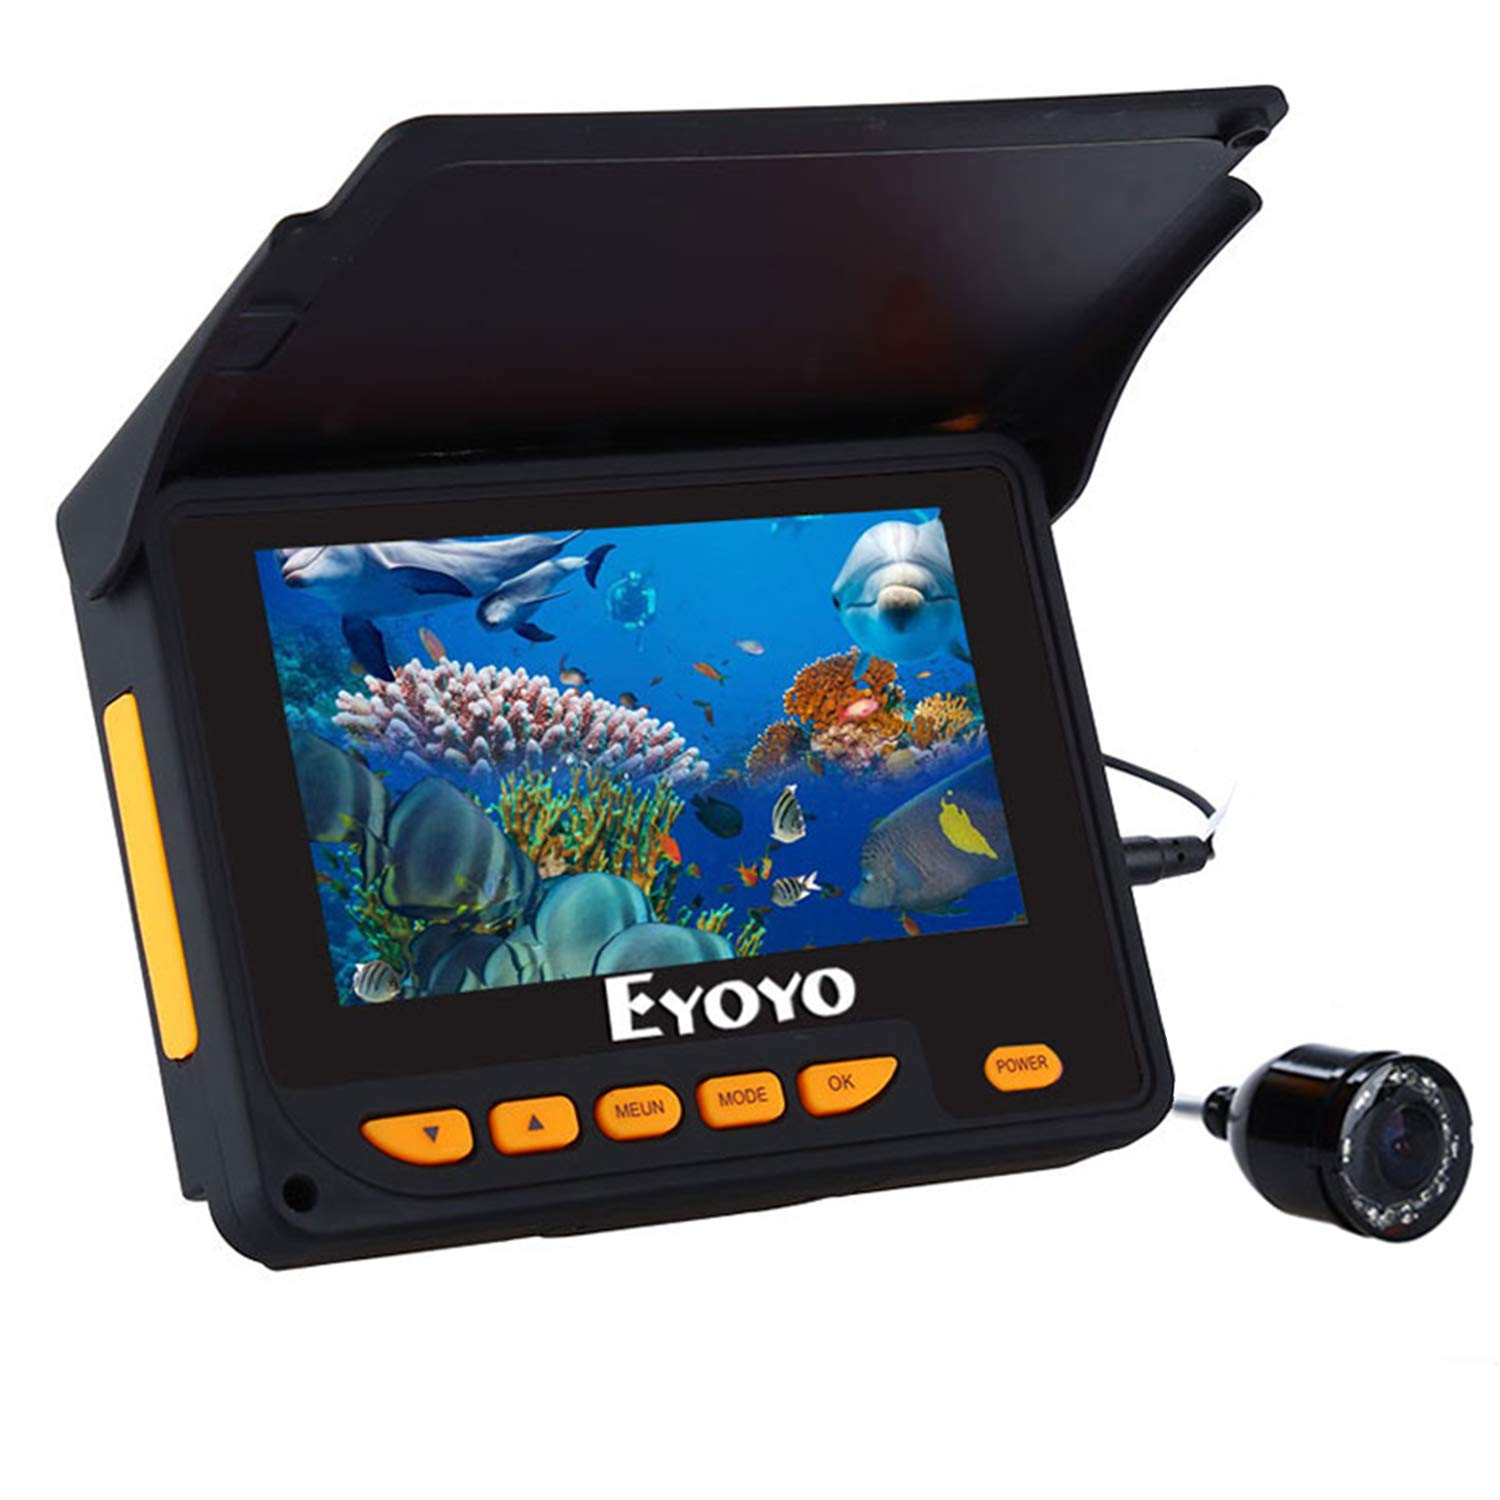 Eyoyo Underwater Fishing Camera Portable Fish Cam 4.3 inch Color Screen DVR Function 1000TVL IP68 Waterproof Camera w/ 8 Adjustable Infrared Lights 20m Cable